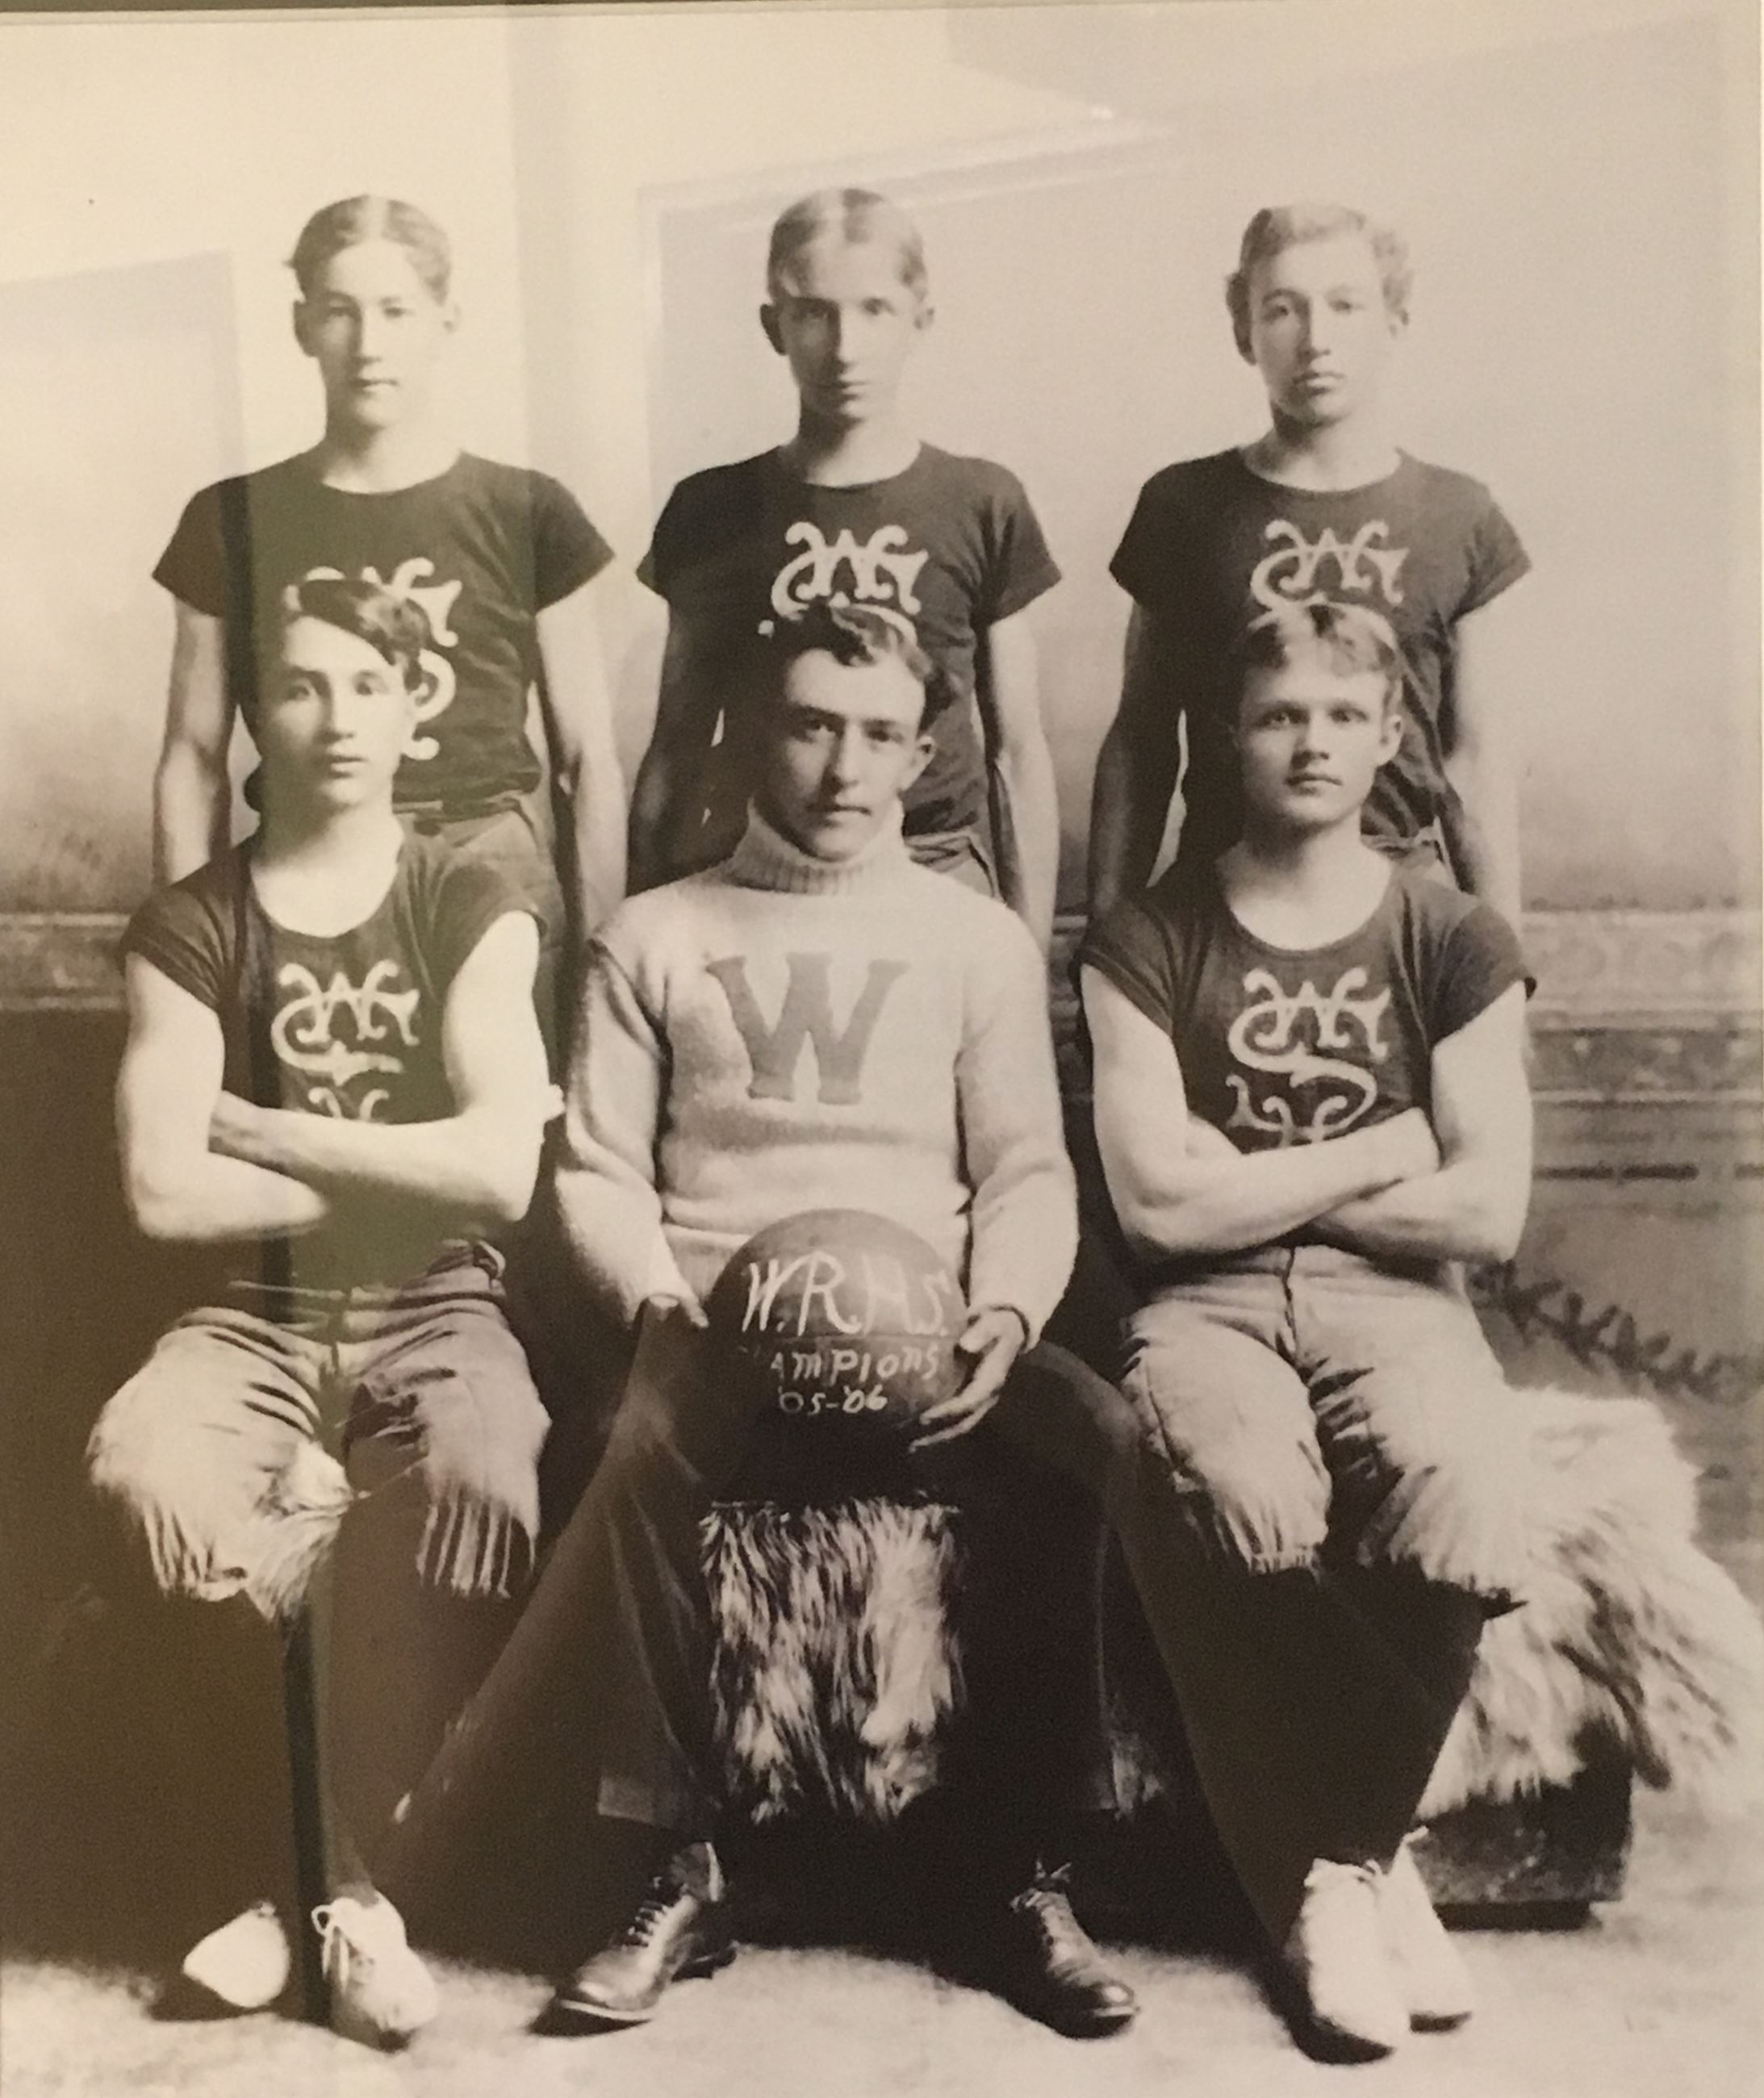 WRHS basketball team 1905-06